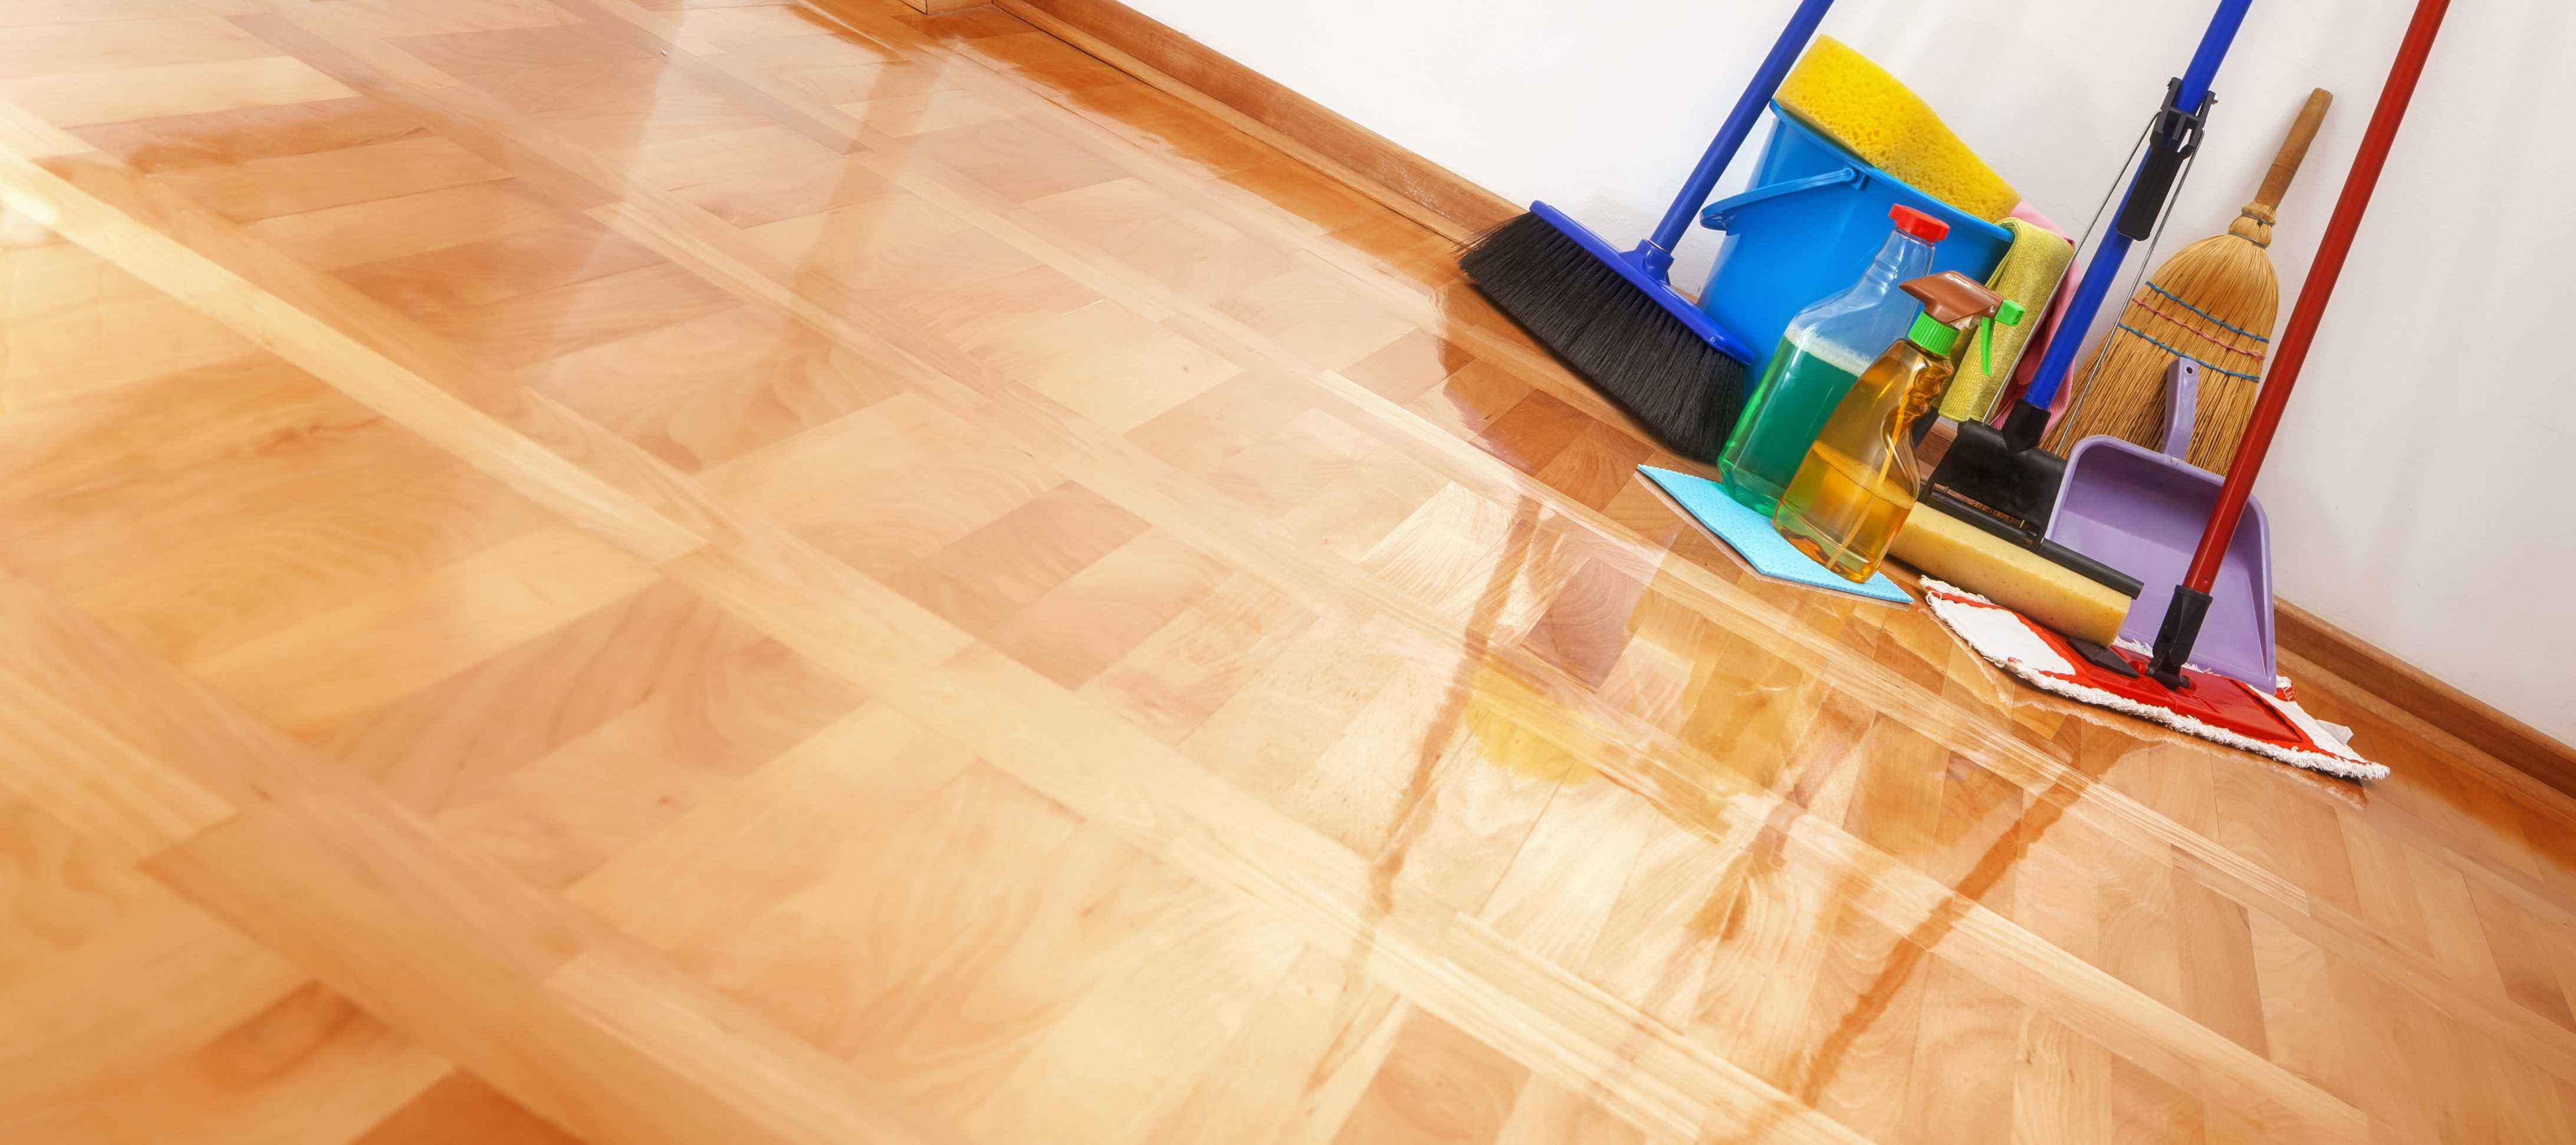 How to Wax Floors Professional Cleaning Services in